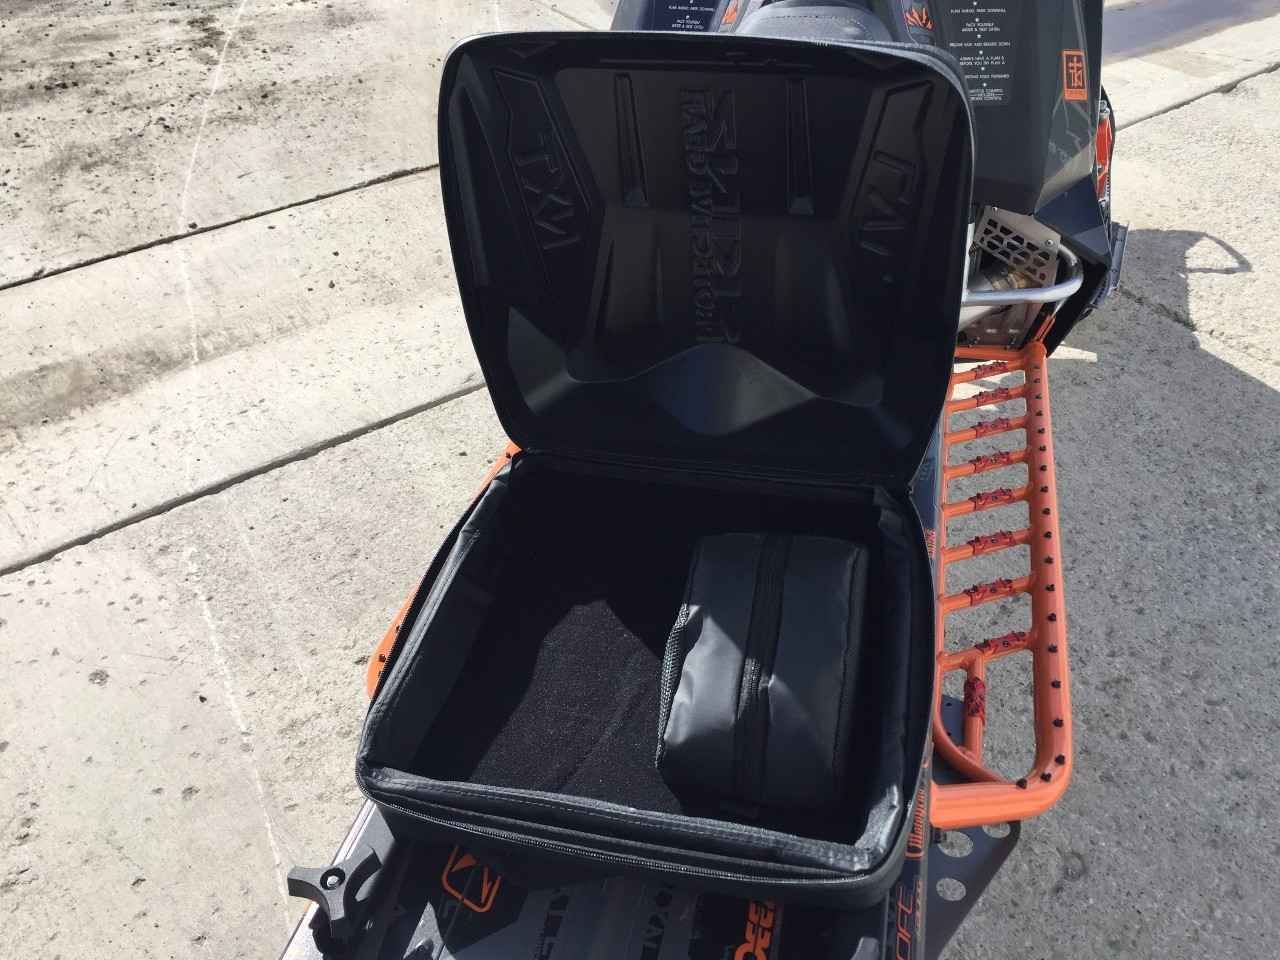 Used 2017 Polaris PRO RMK 800 Snowmobile For Sale in Wyoming,WY  <b